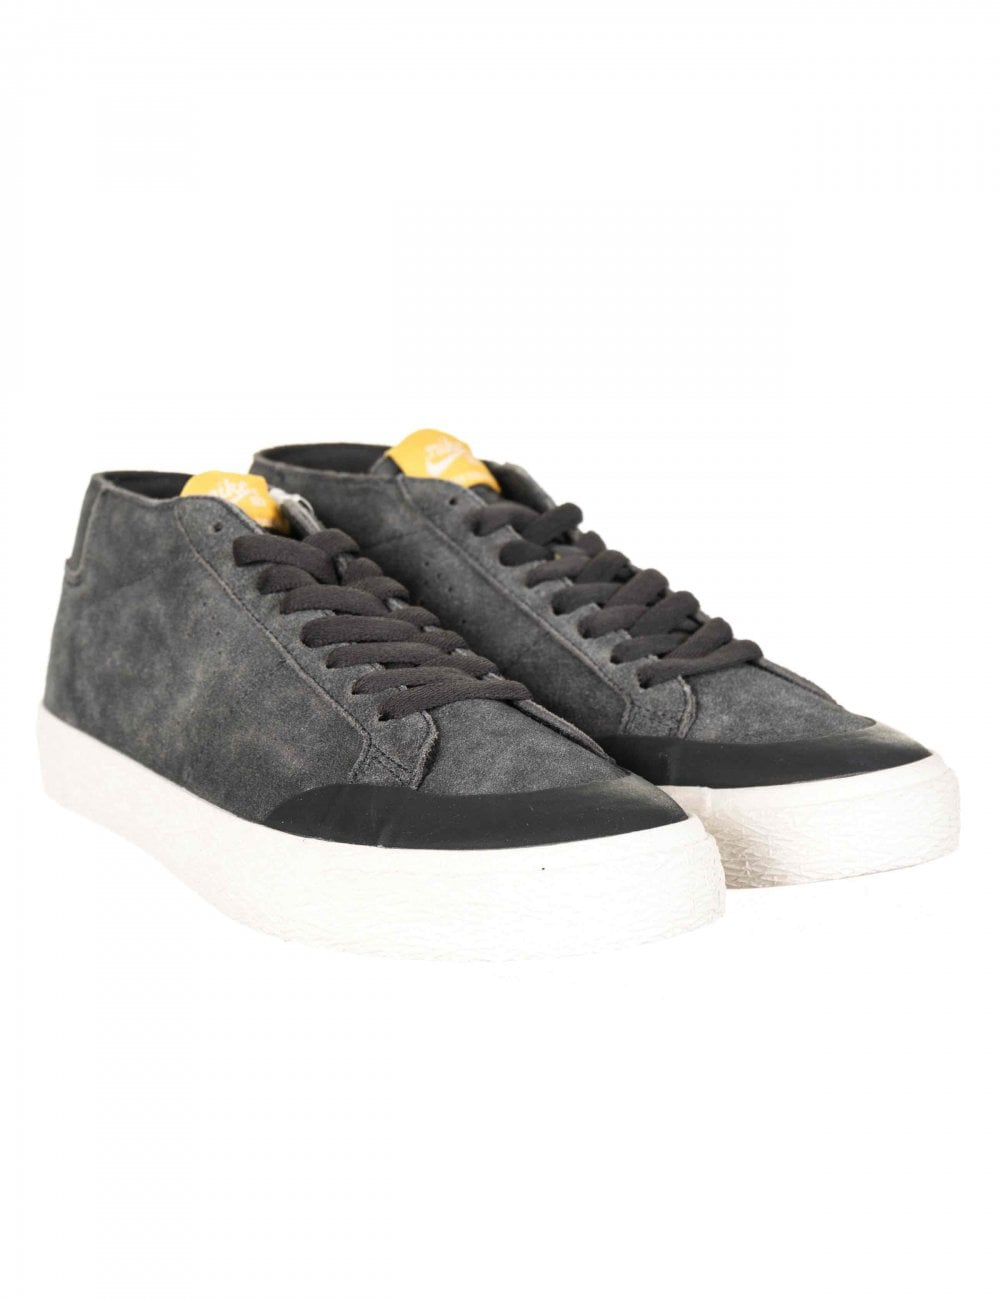 premium selection 94c30 11983 Zoom Blazer Chukka XT Trainers - Anthracite (Lance Mountain Pack)